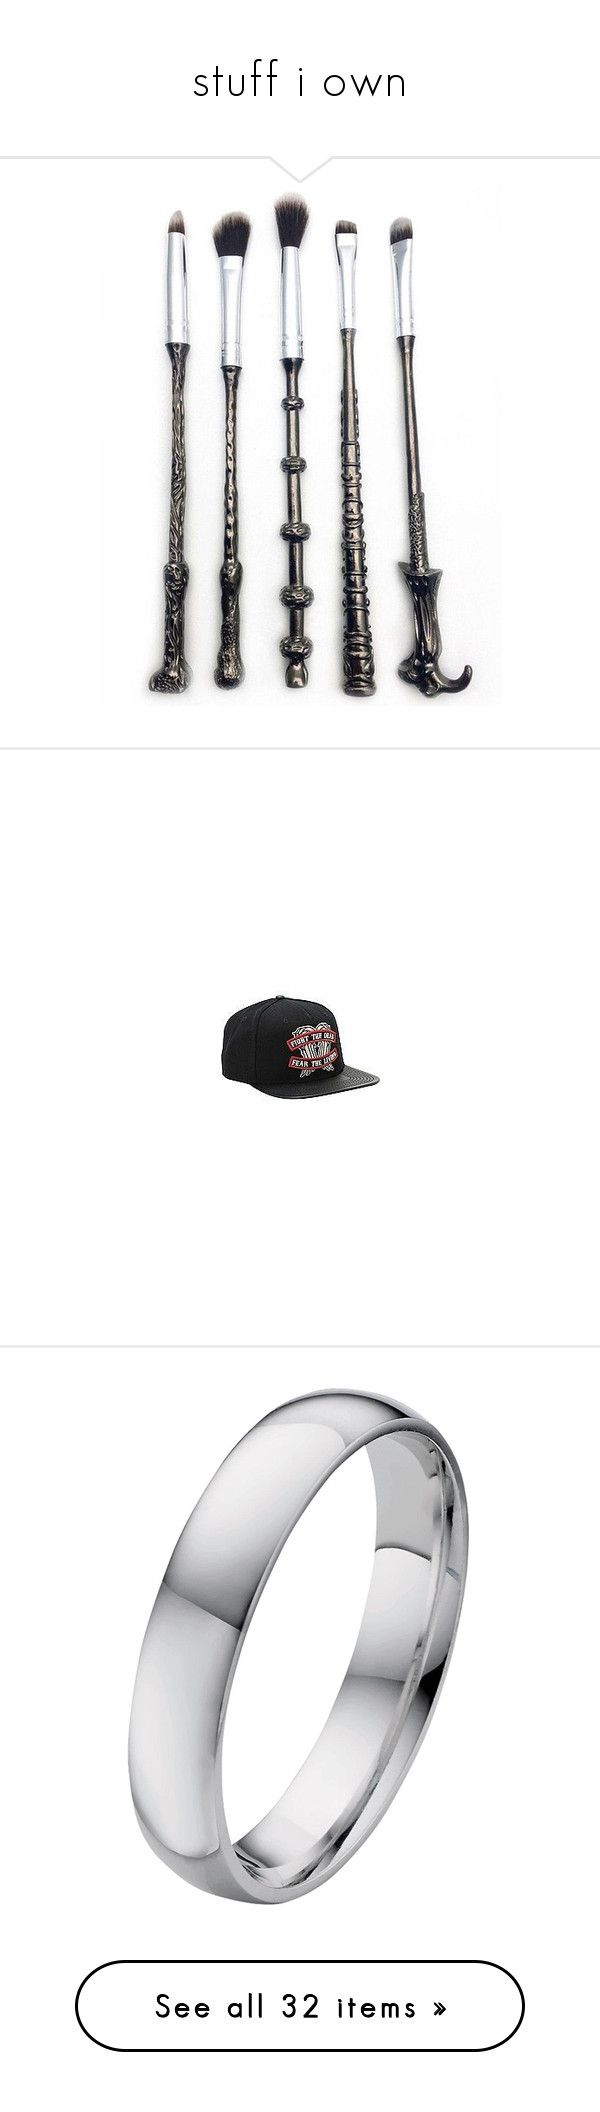 """""""stuff i own"""" by j-j-fandoms ❤ liked on Polyvore featuring beauty products, makeup, makeup tools, makeup brushes, accessories, hats, hot topic hats, snapback hats, hot topic and snap back hats"""